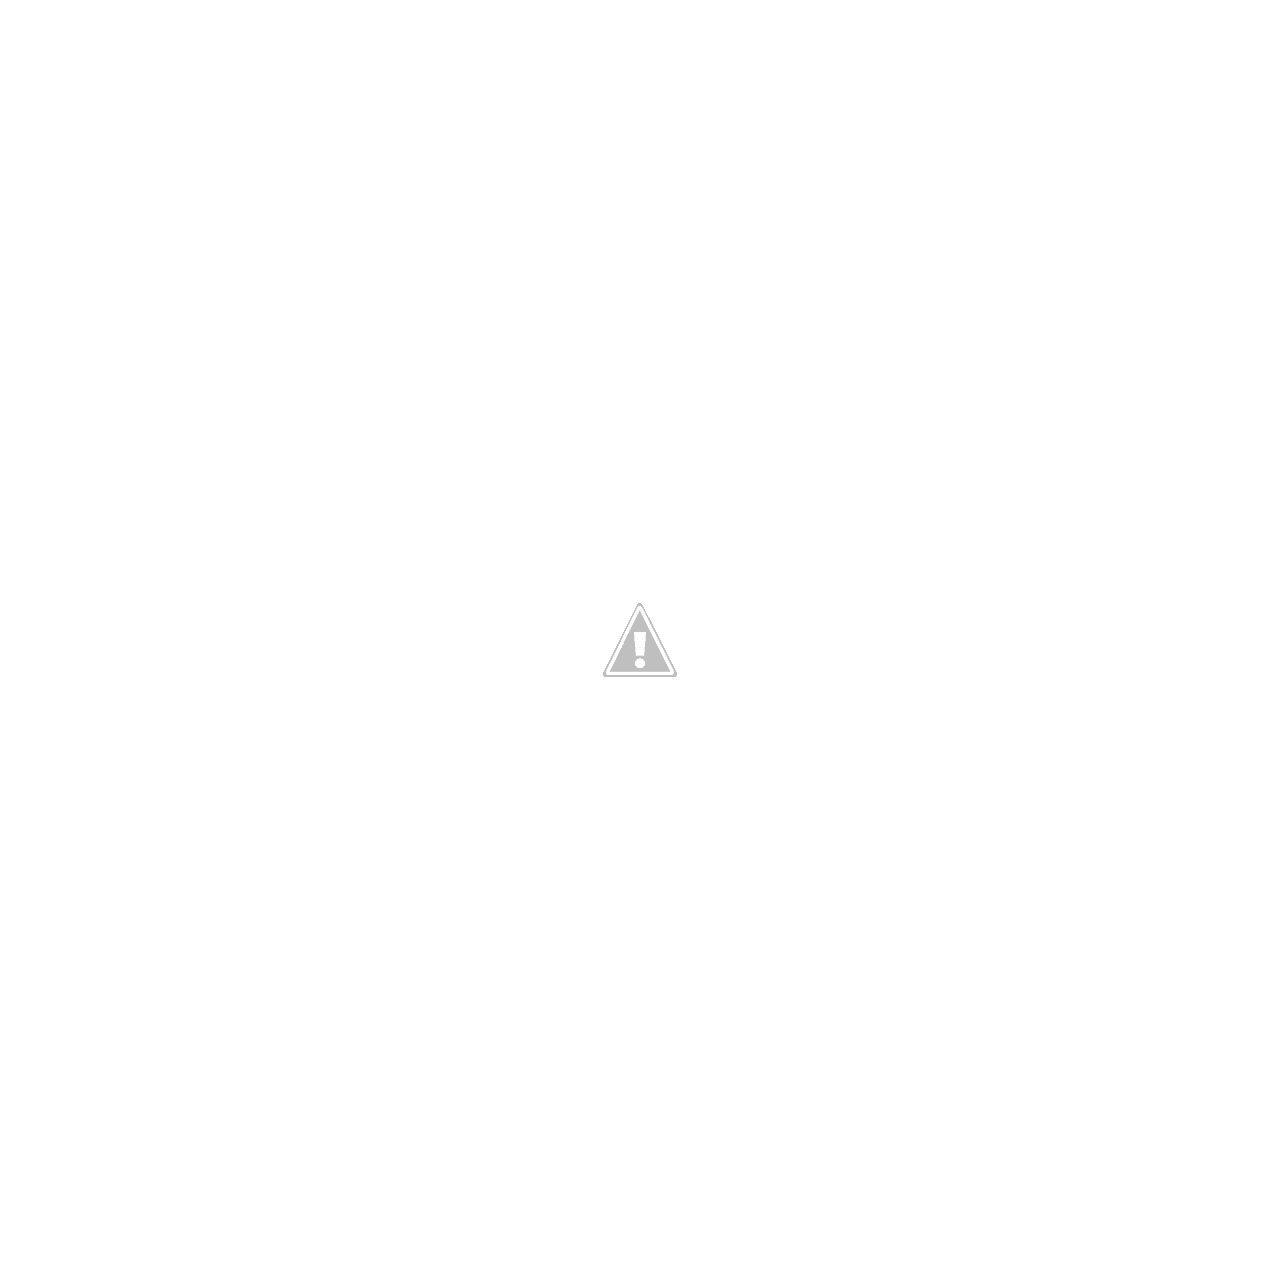 Schreibers Small Engine Repair Of Rockford Chainsaw Fuel Filter Posted On Feb 6 2018